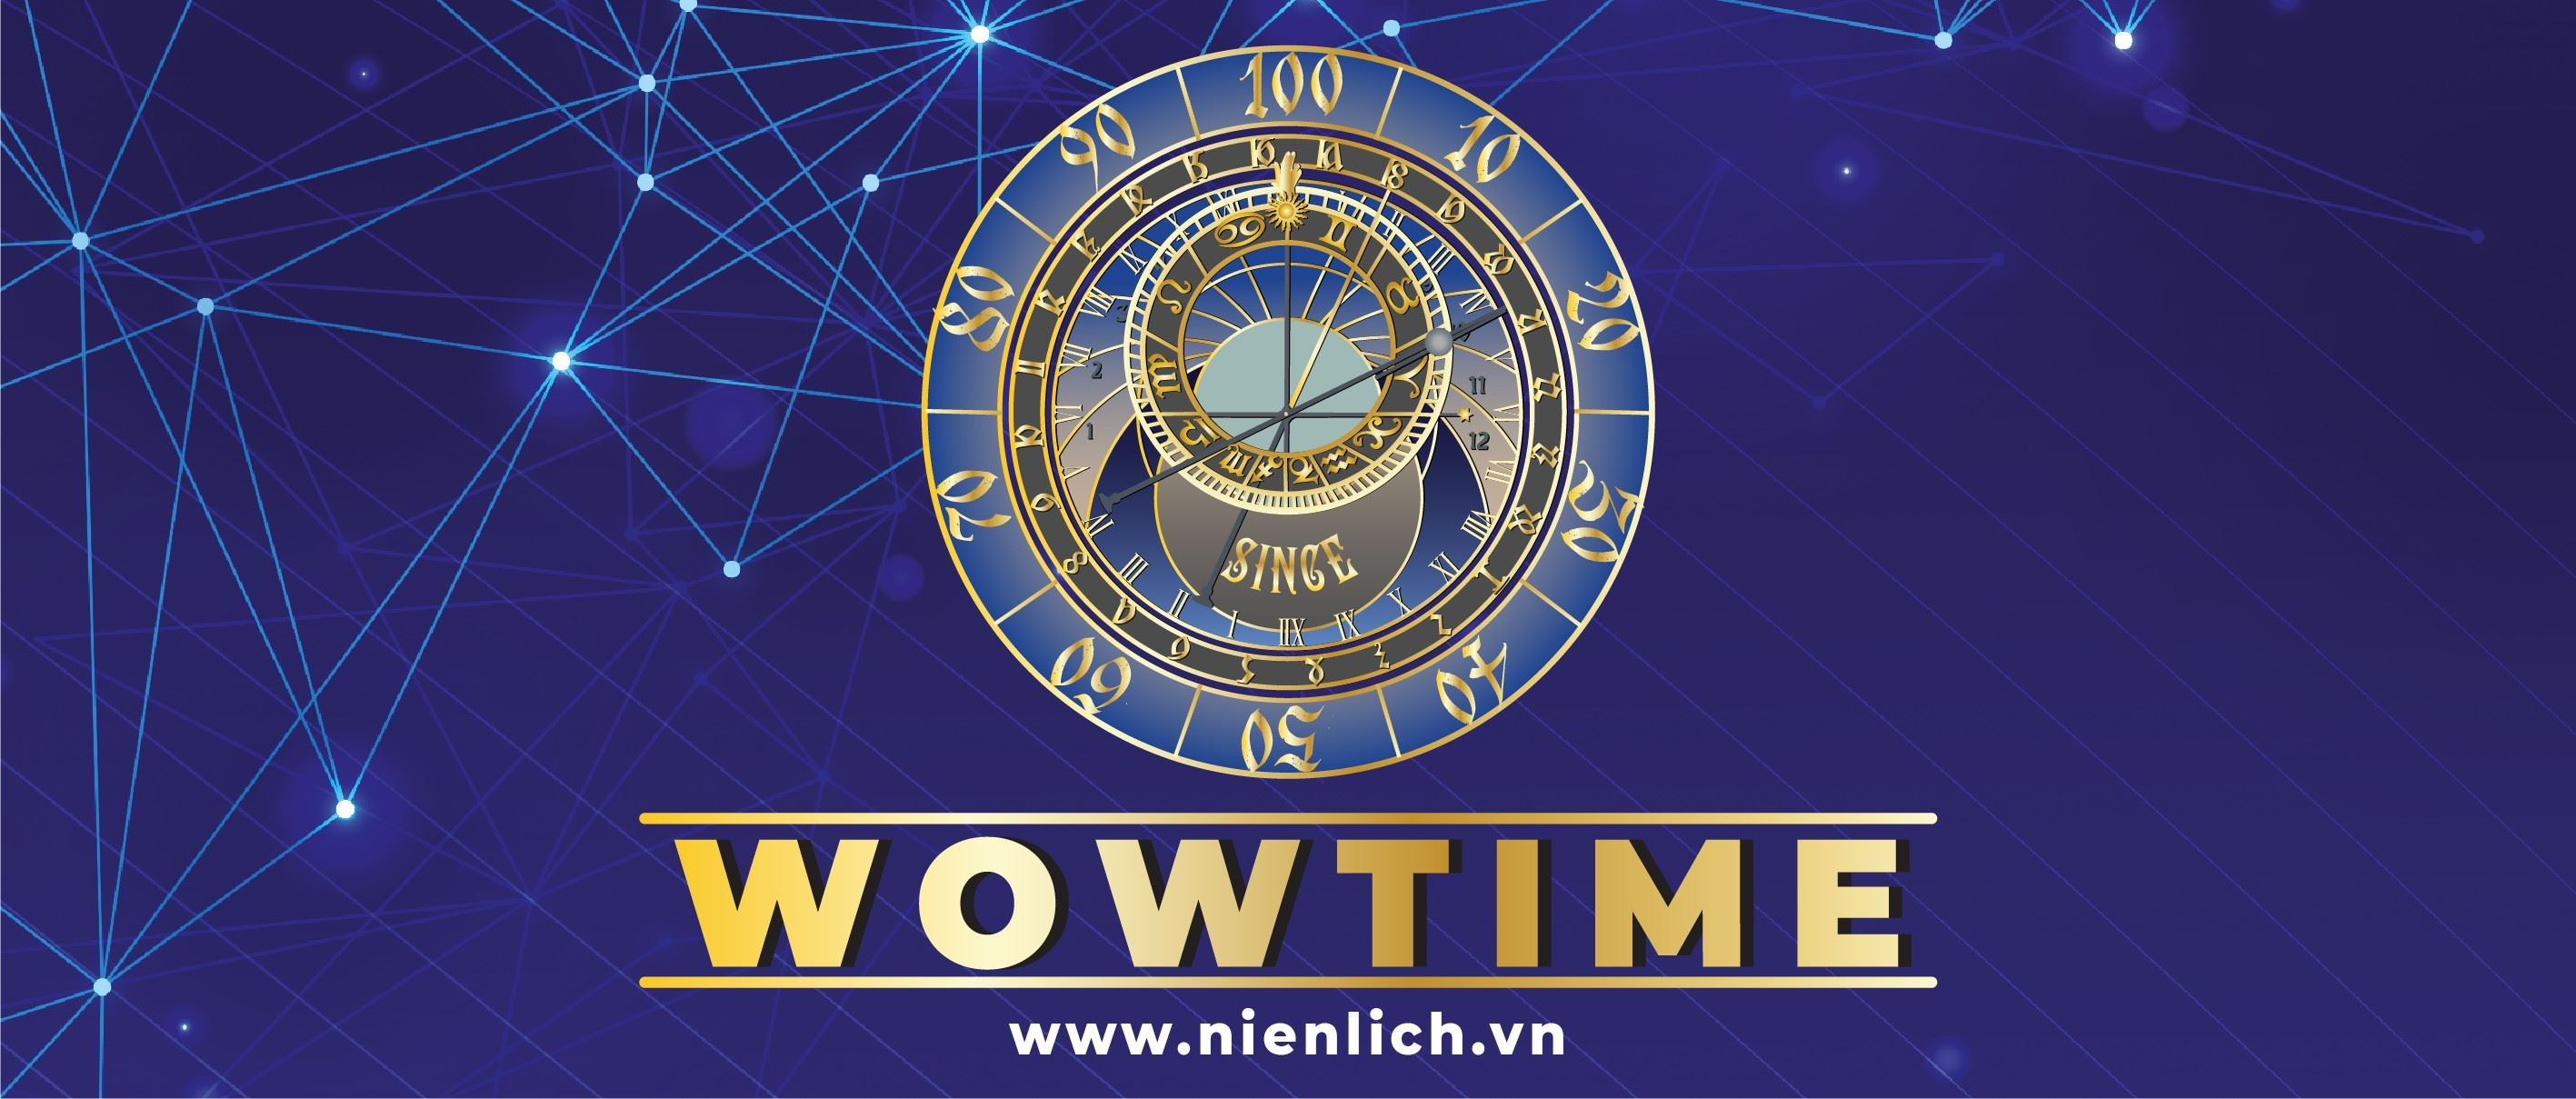 wowtime